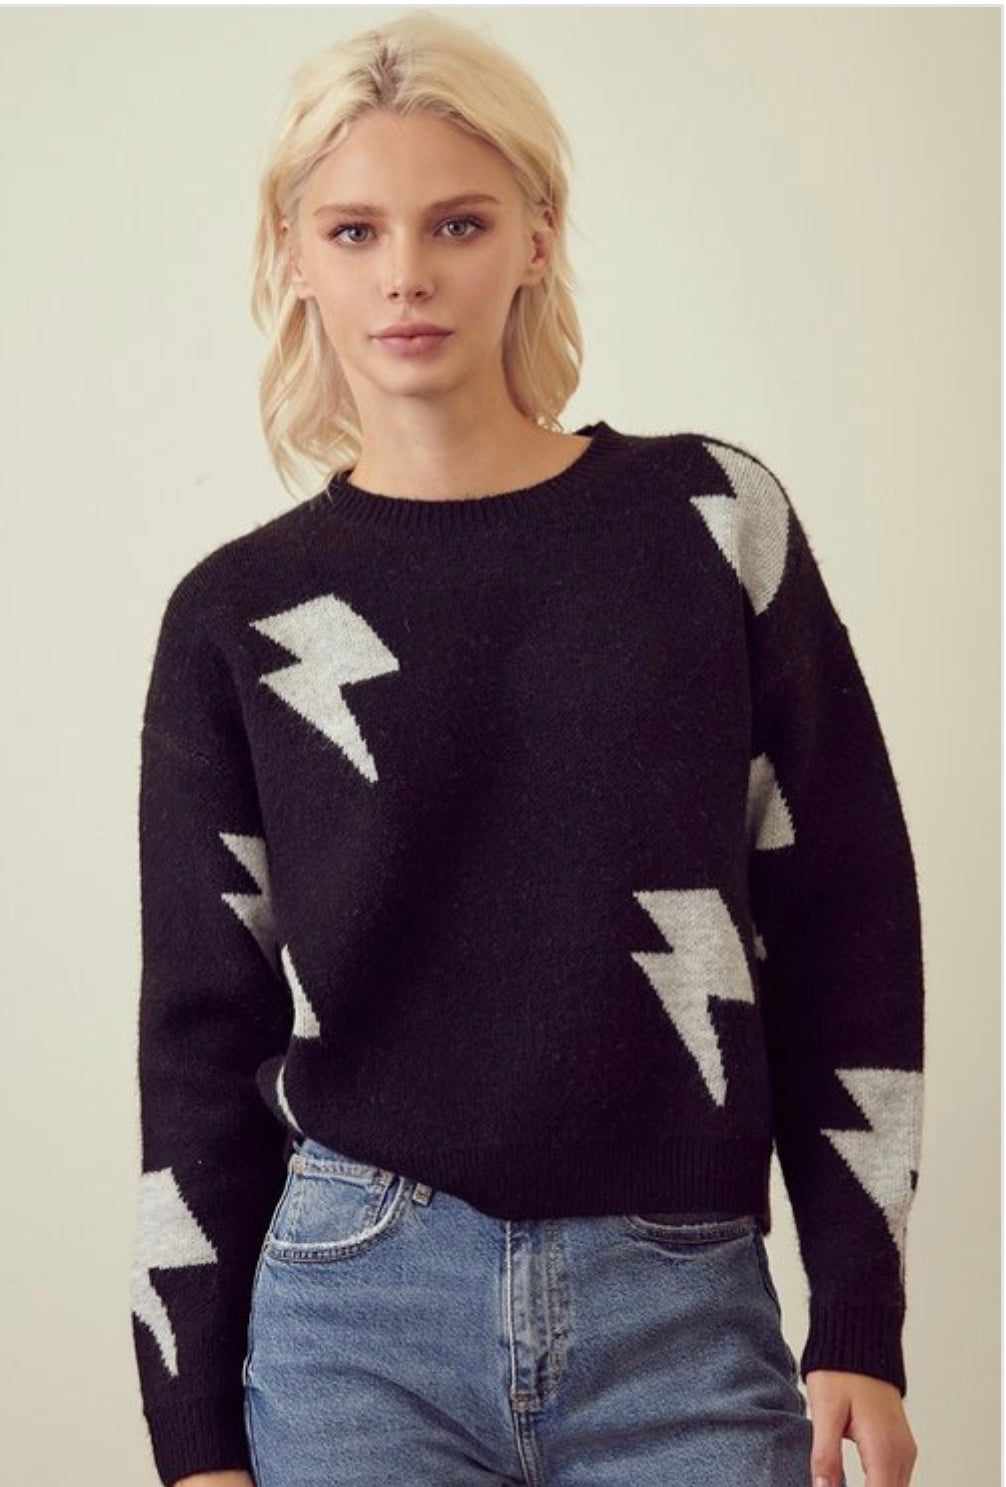 Lightning  Strikes Pullover Sweater